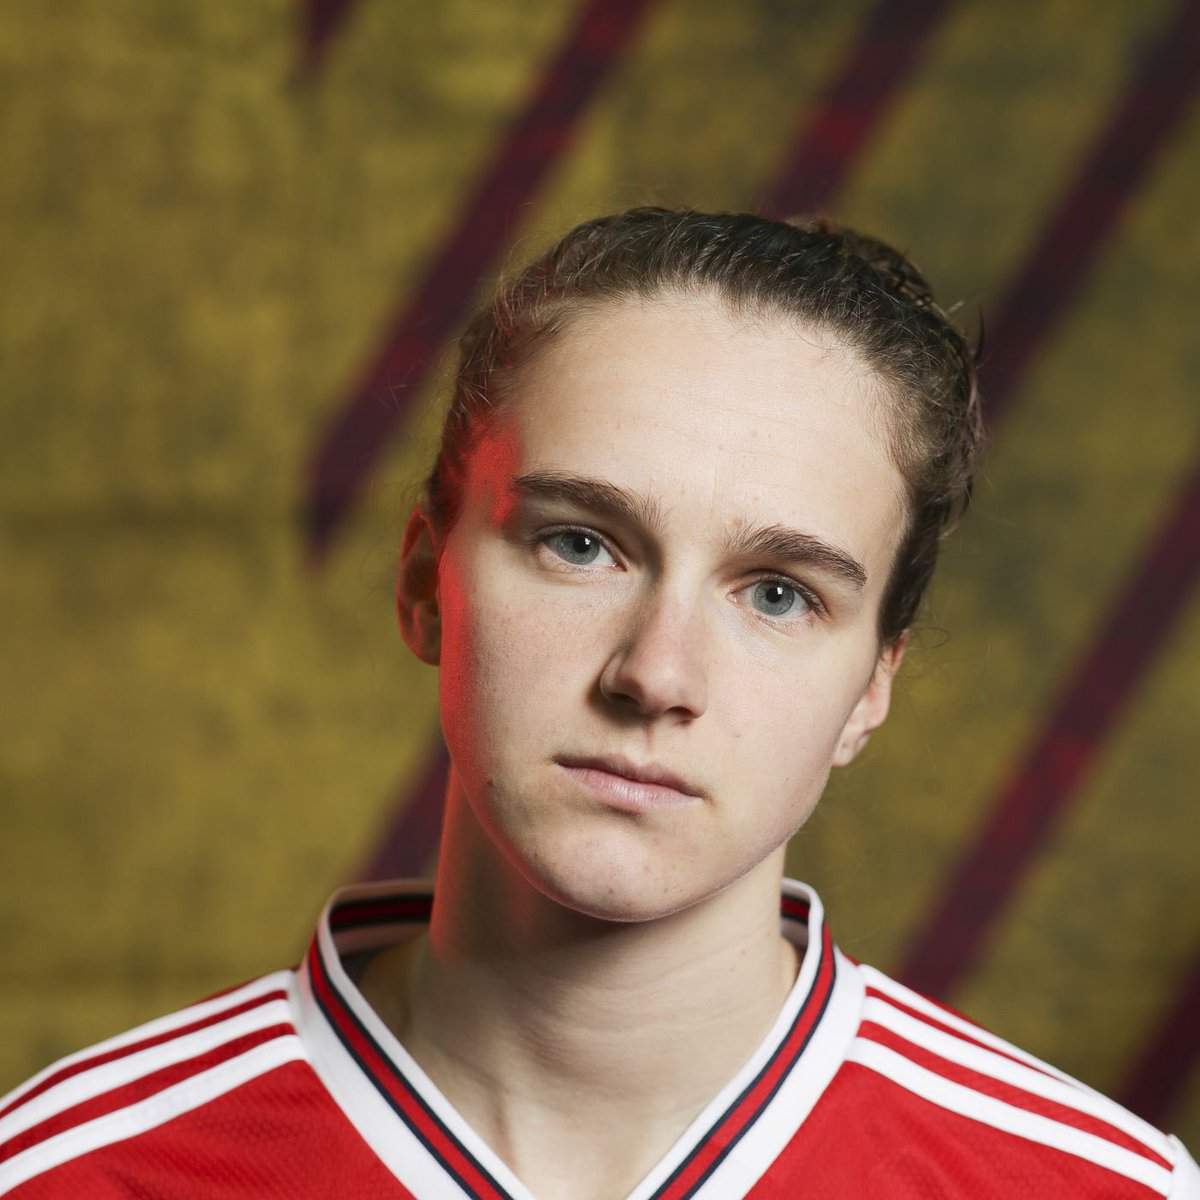 today is my 18th birthday and it would make my day it either of my favourite players @VivianneMiedema or @RobHolding95 could reply to this🥺💕  if anyone wants to tag either of them or anything that would be cool :) ty